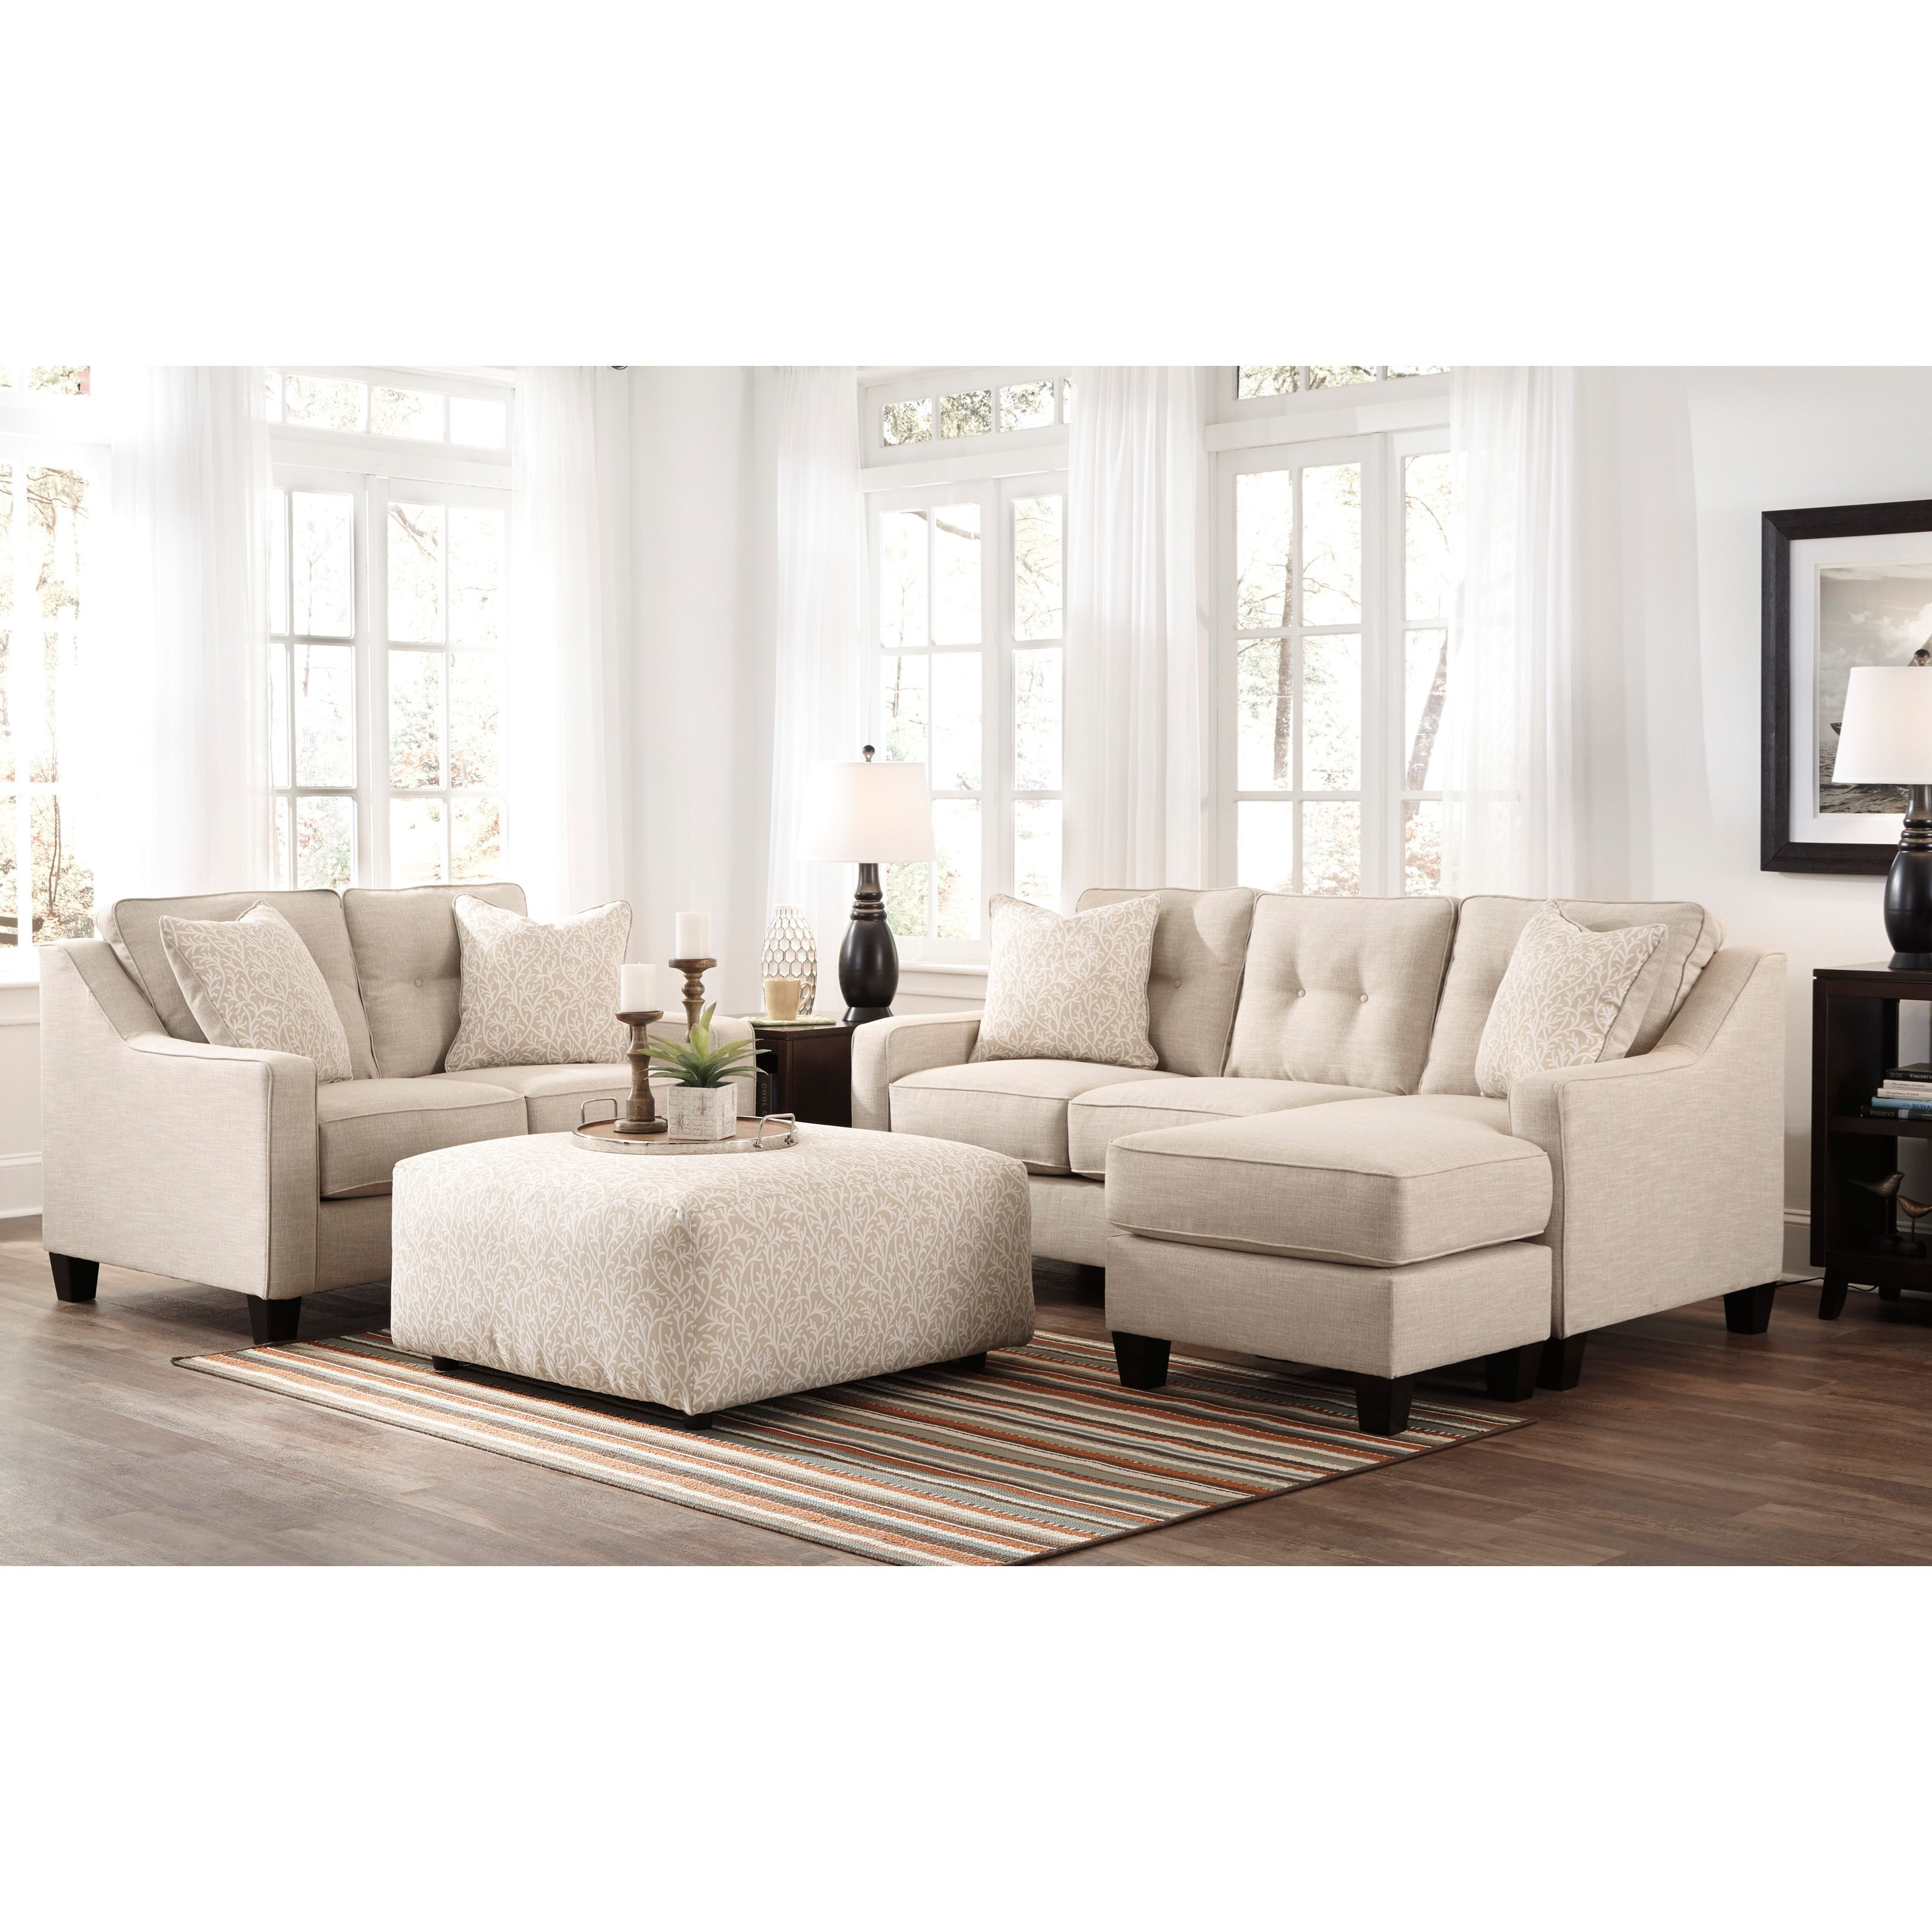 Benchcraft Aldie Nuvella Stationary Living Room Group - Item Number: 68705 Living Room Group 2